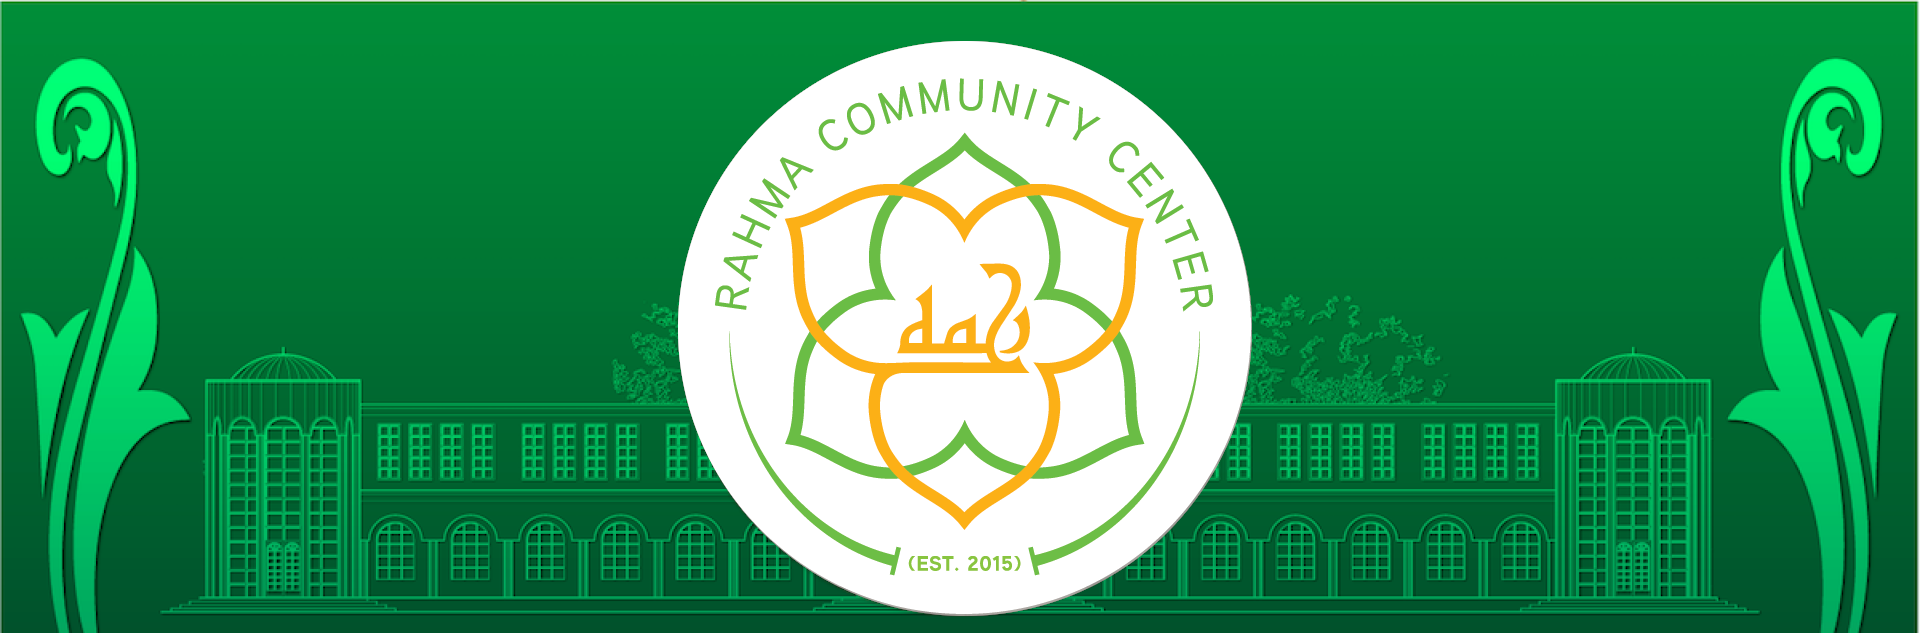 Rahma Community Center